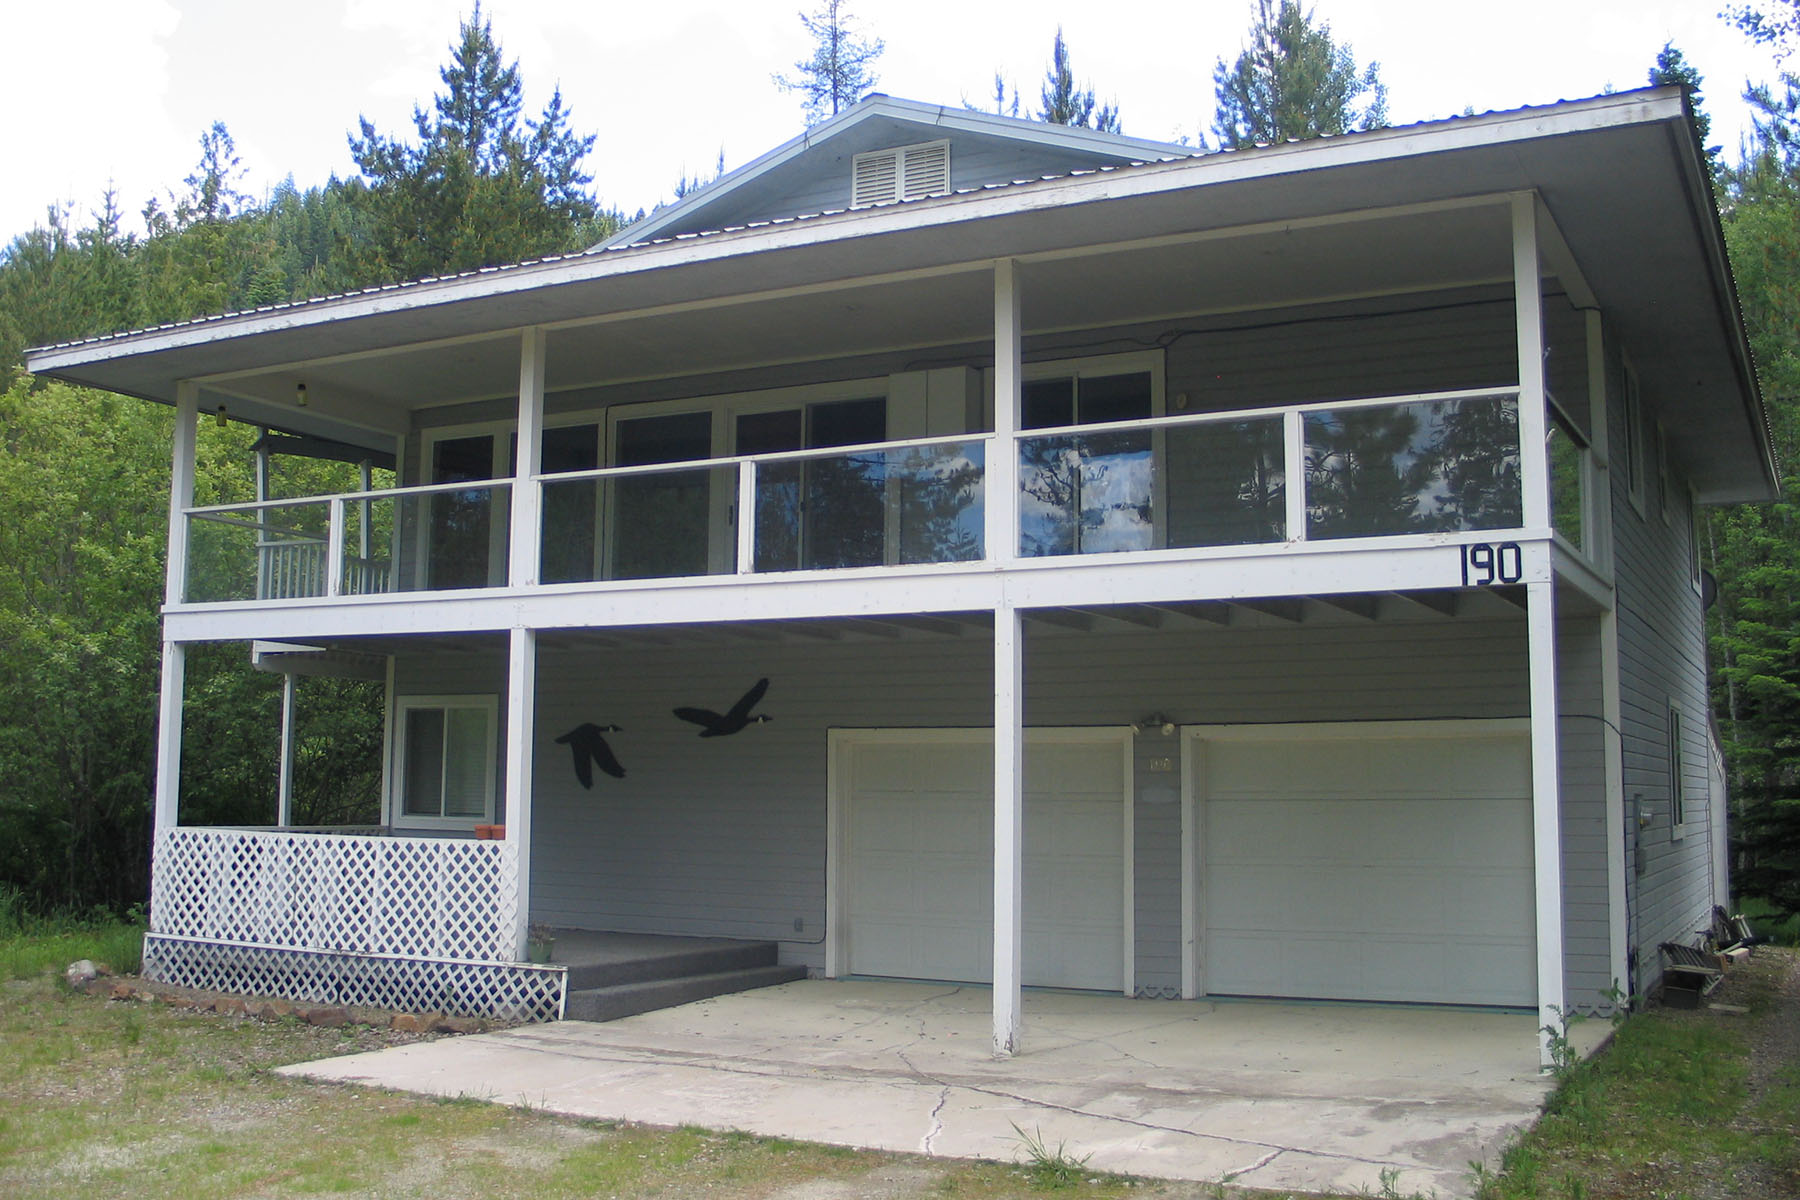 Single Family Home for Sale at Spacious Secondary Waterfront Home 190 Sunny Shores Sagle, Idaho 83860 United States